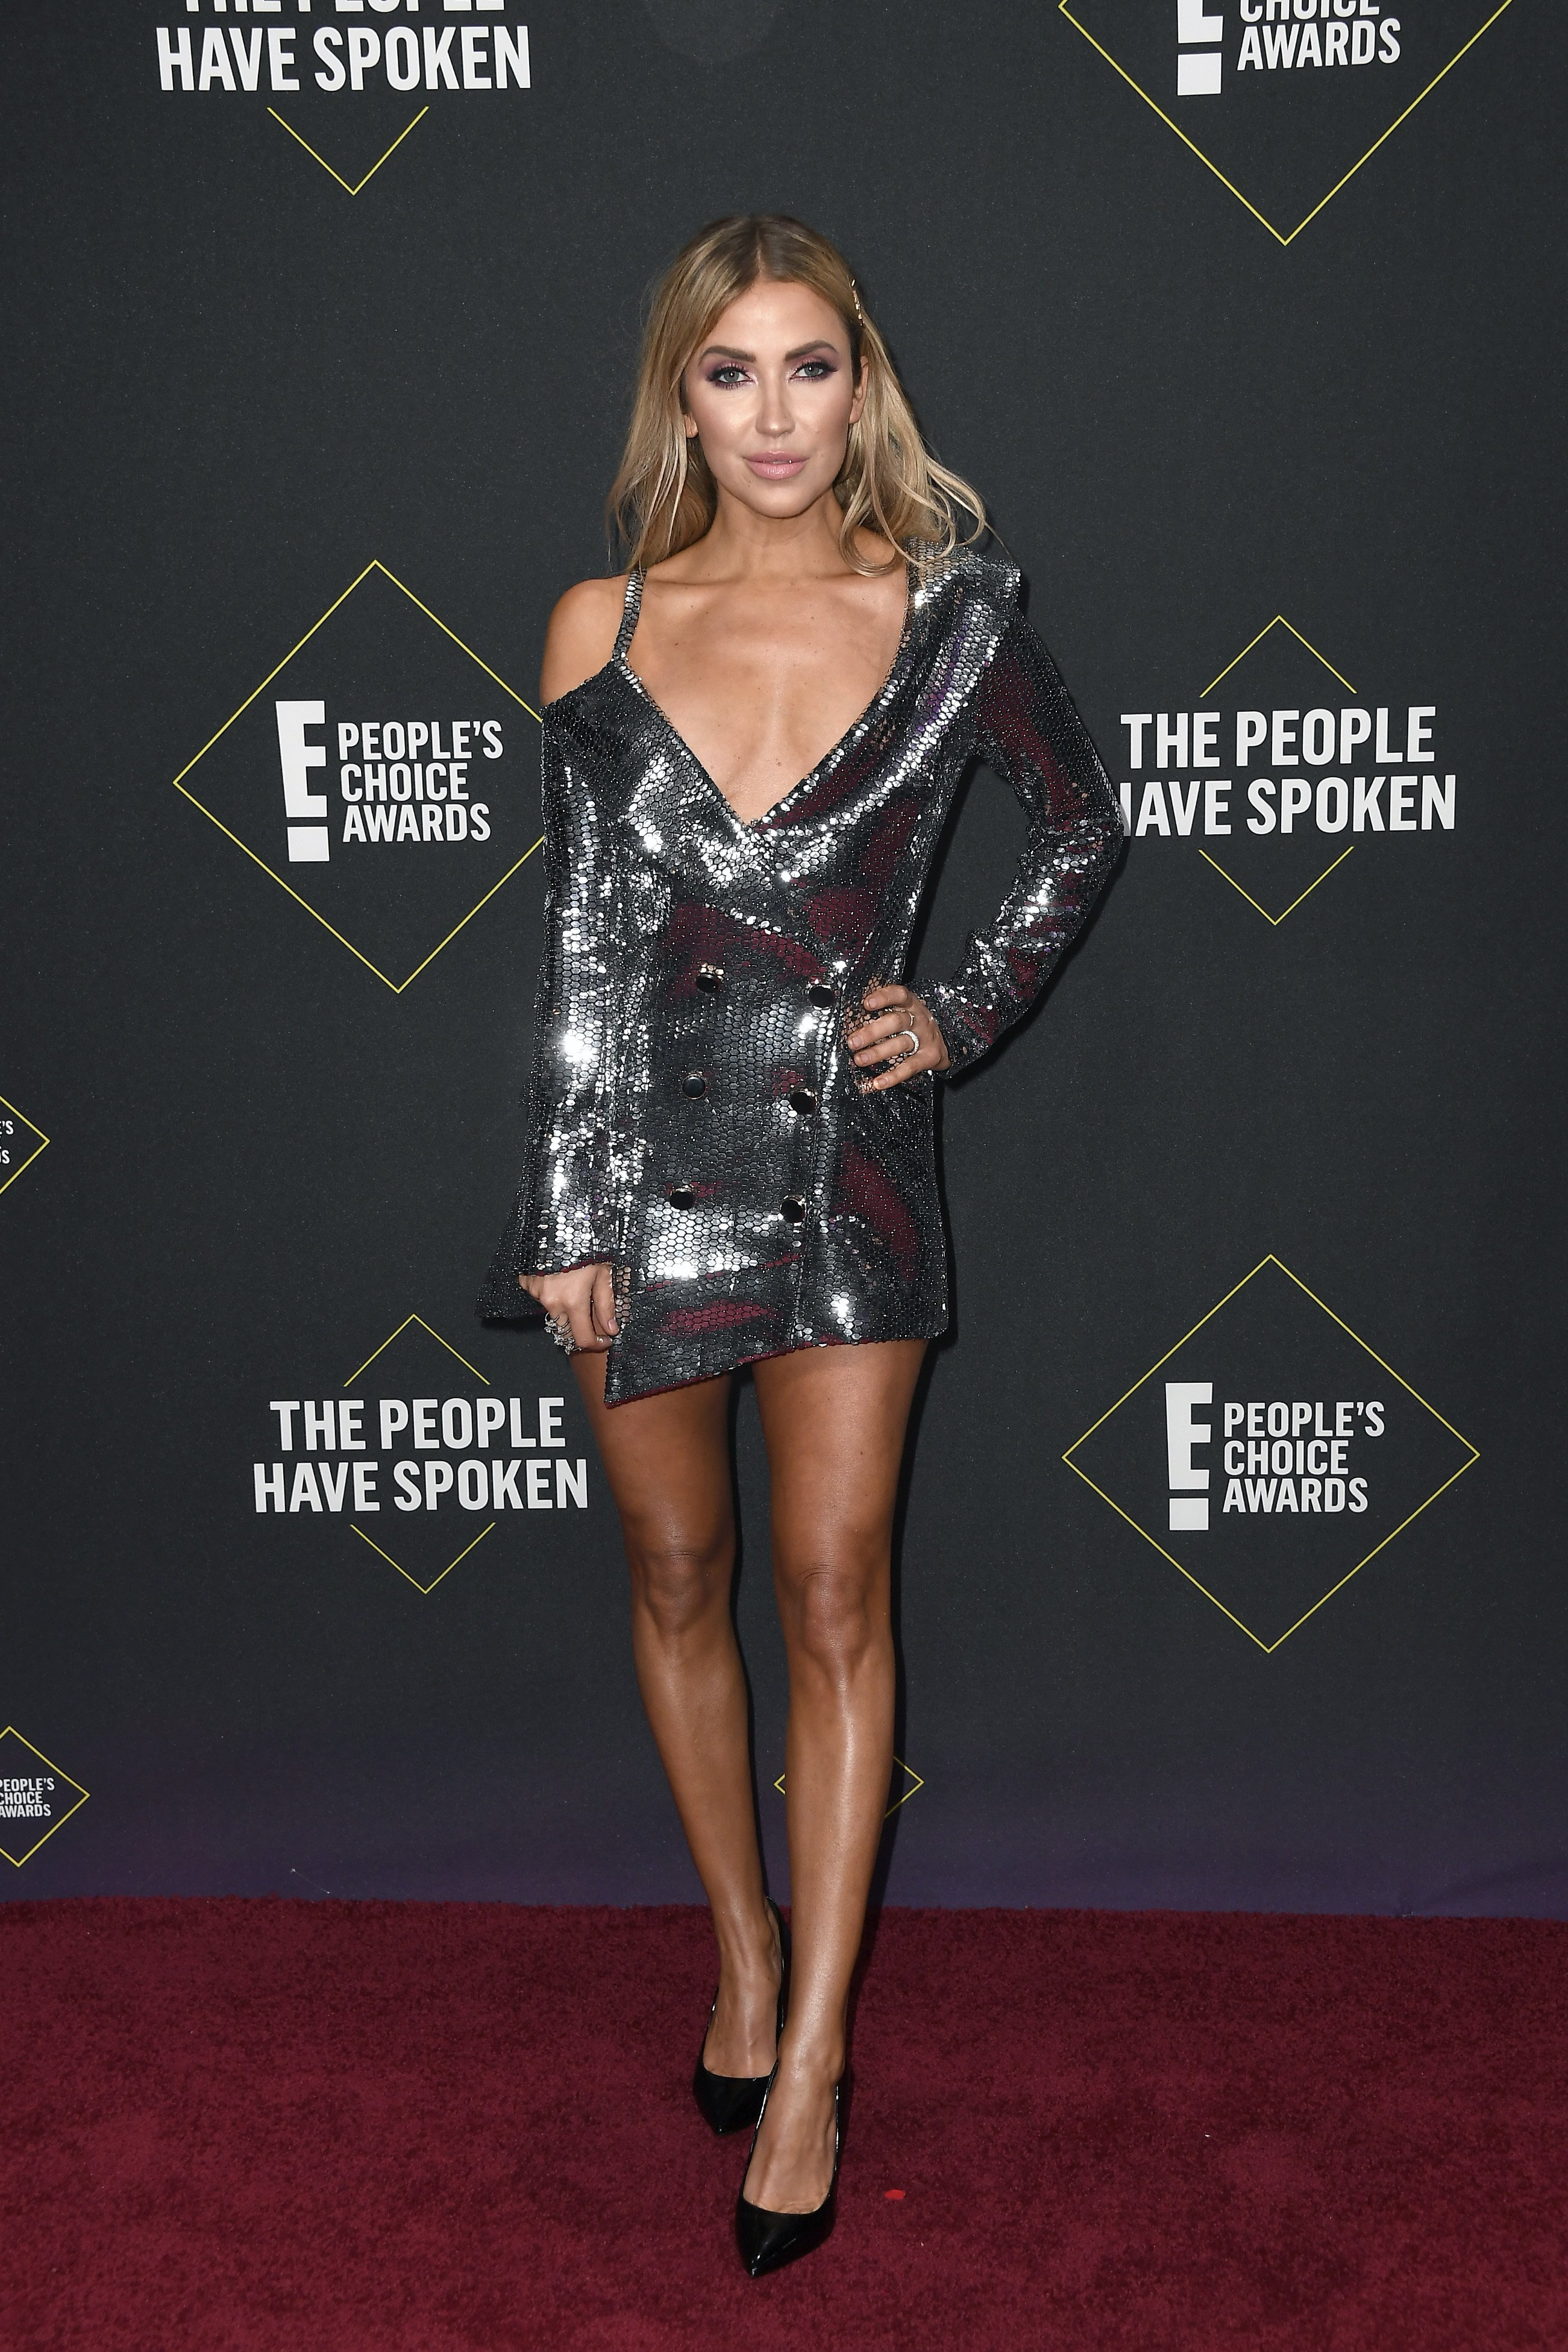 Kaitlyn Bristowe attends the People's Choice Awards in Santa Monica, California on November 10, 2019 | Photo: Getty Images